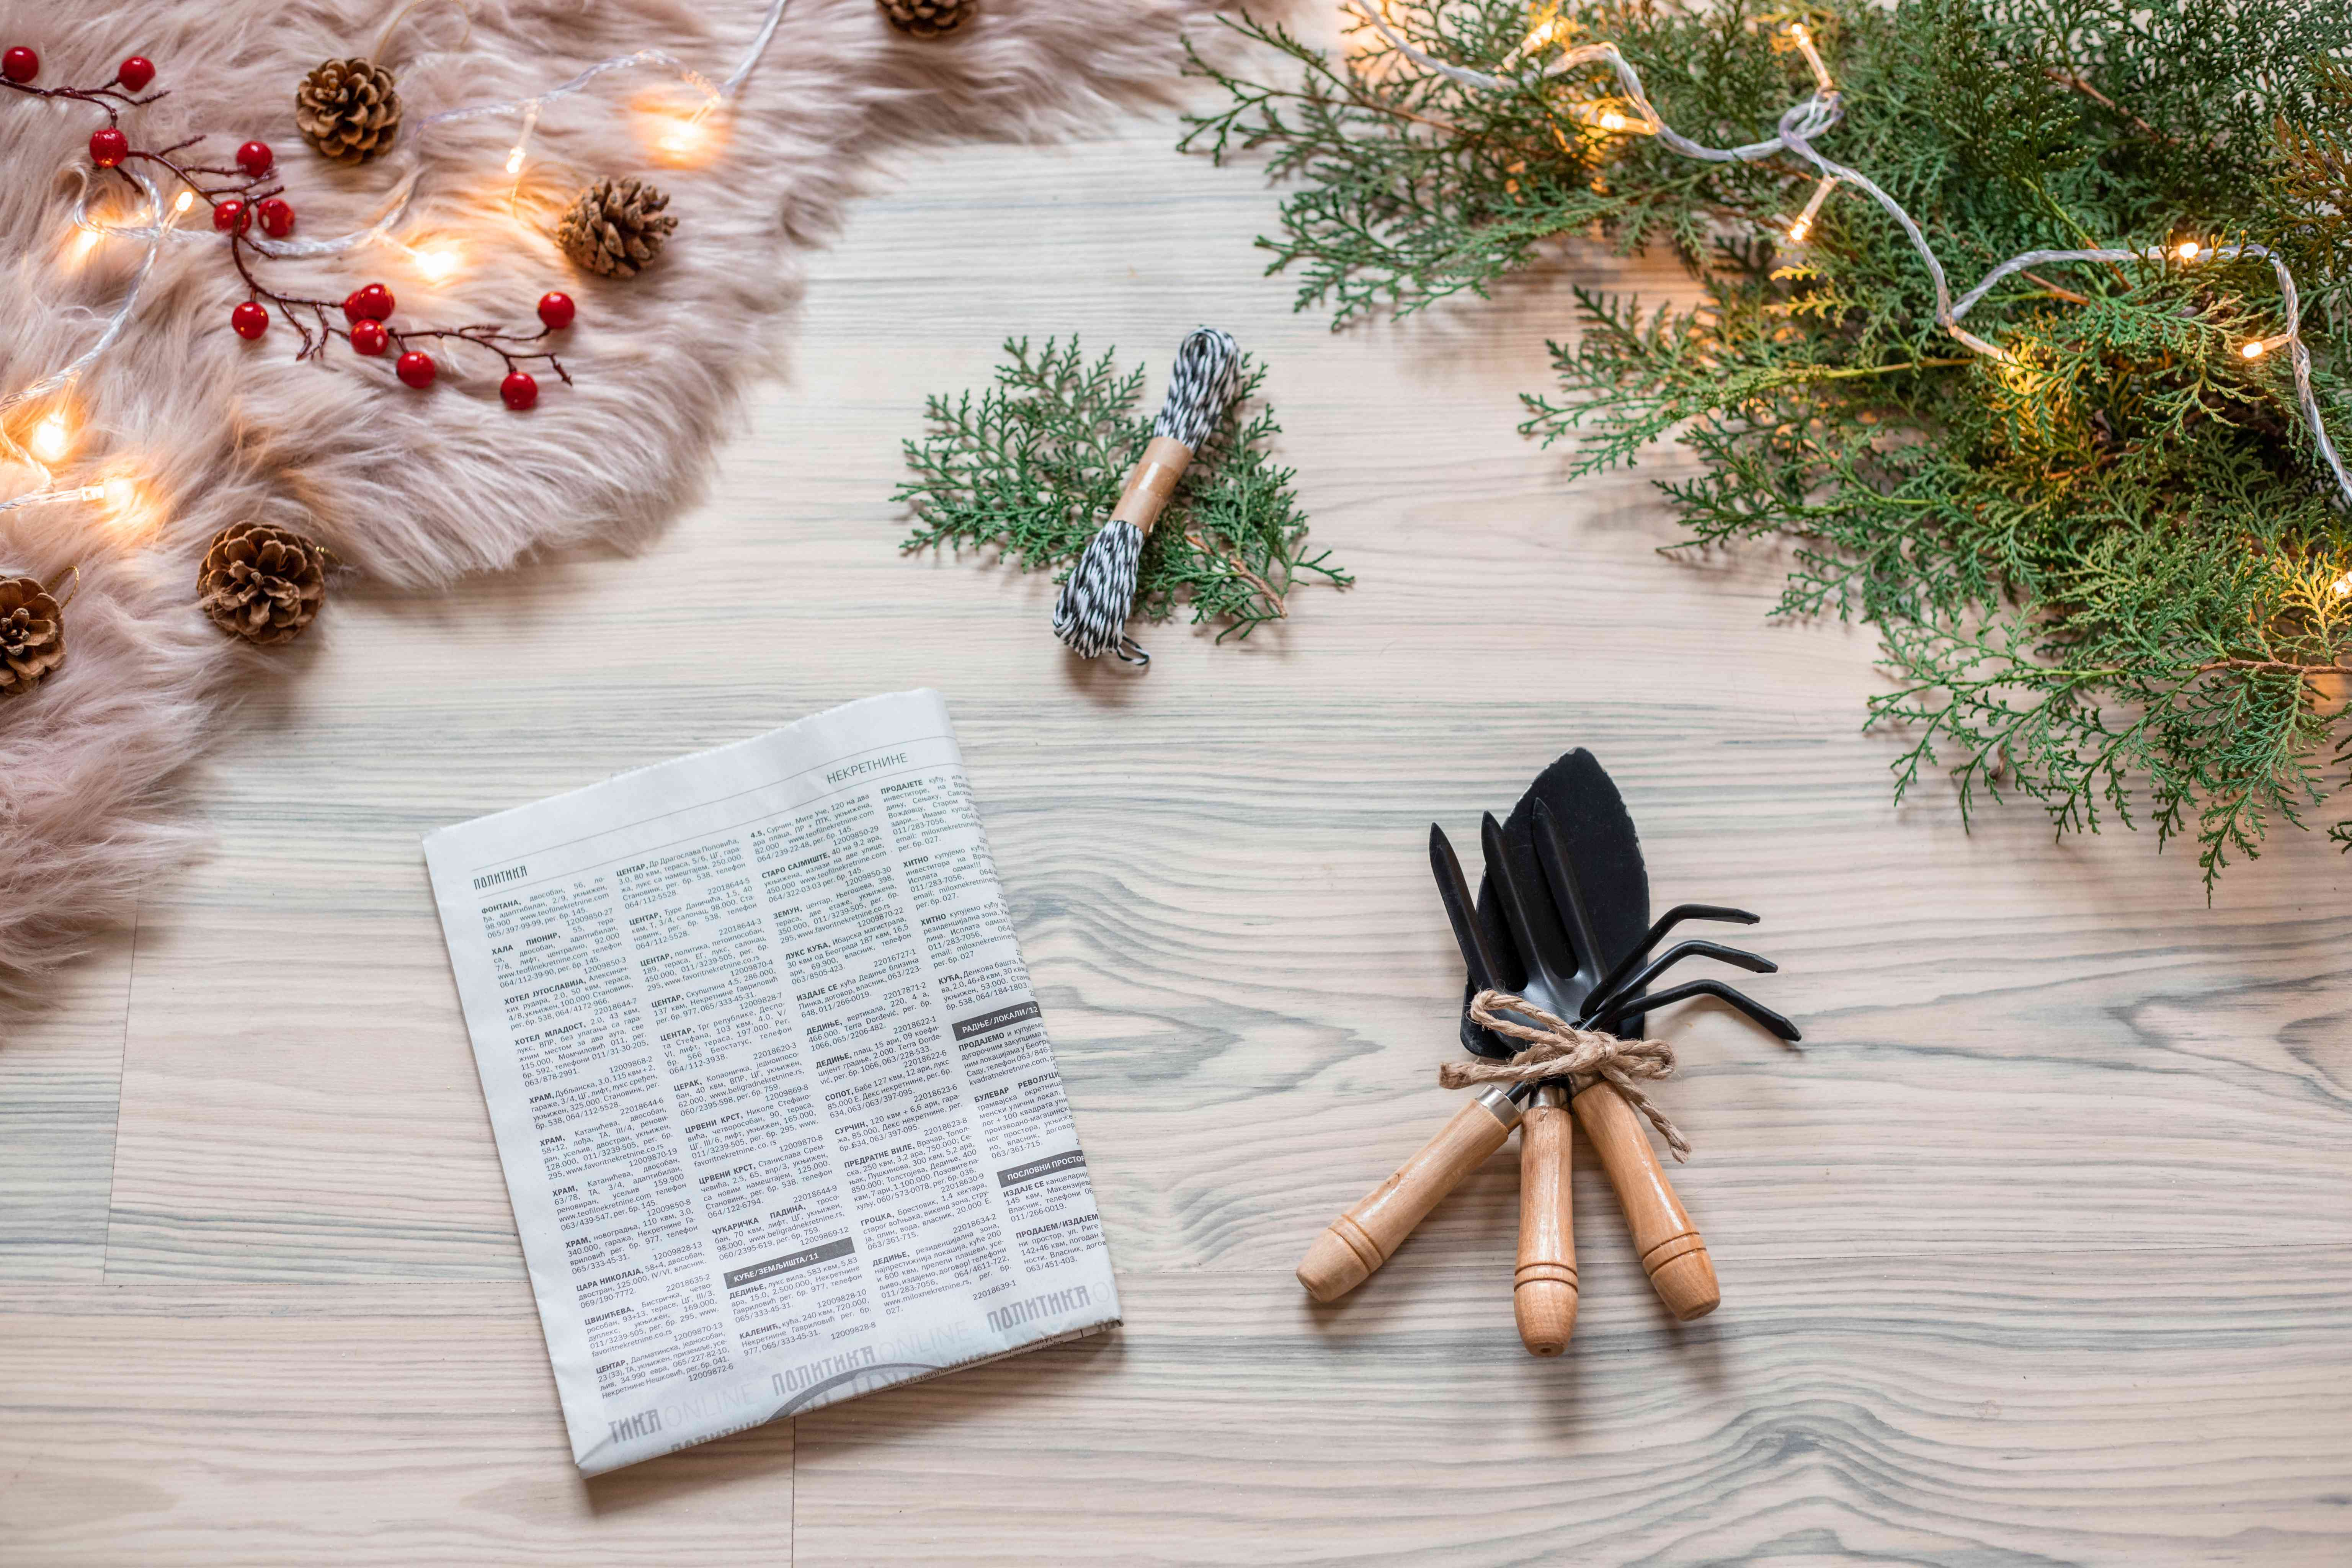 wrapping presents with twine and old newspaper